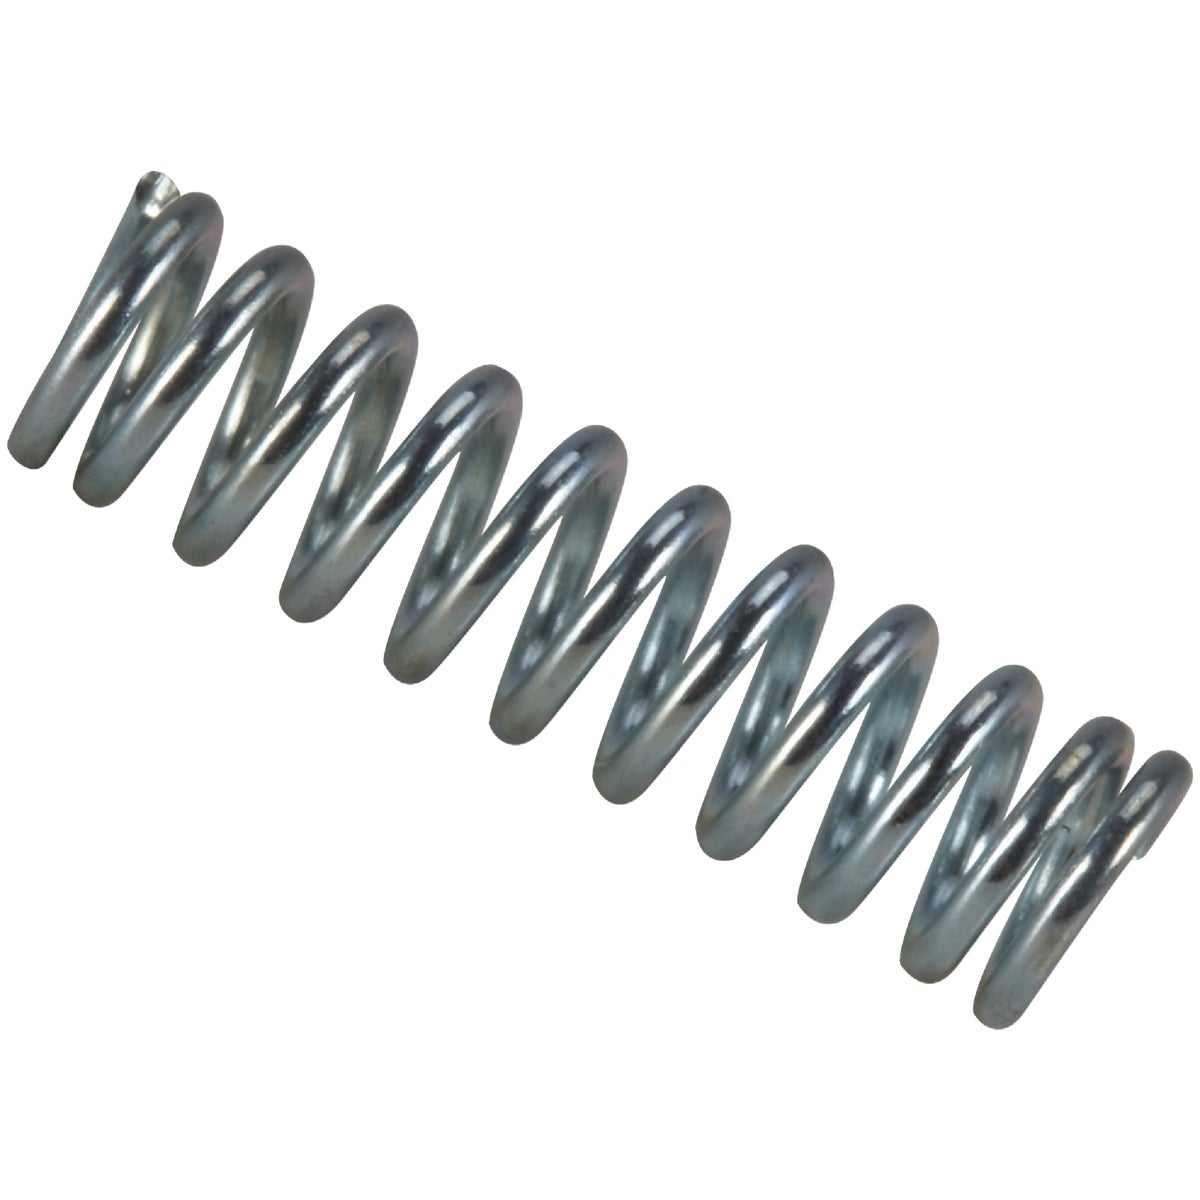 COMPRESSION SPRING - C-834 by Century Spring Corp